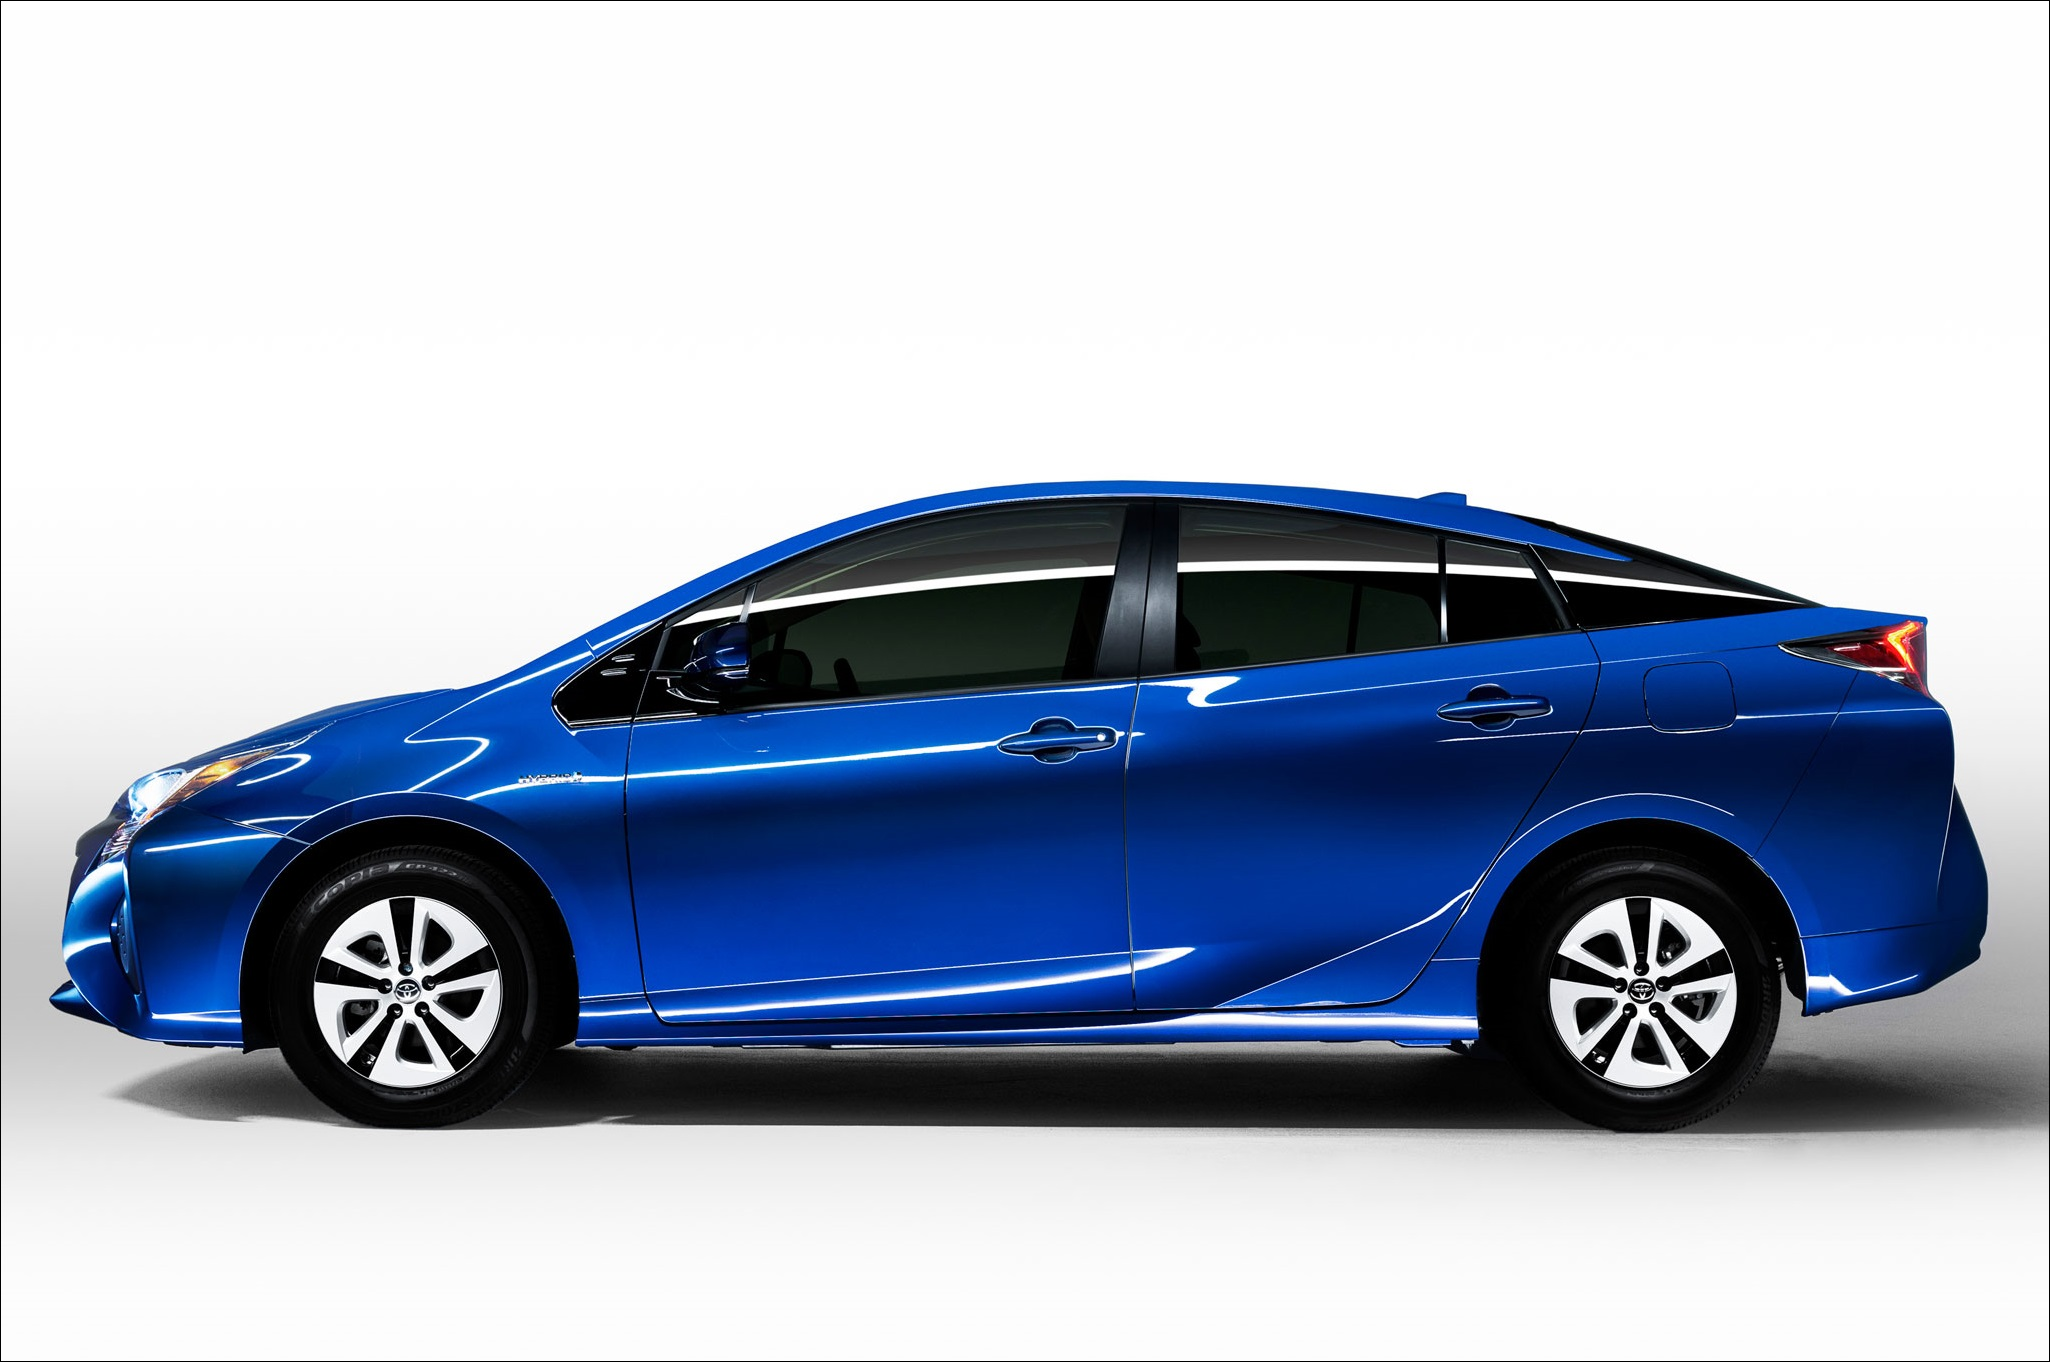 2016-toyota-prius-eco-side-view (1)